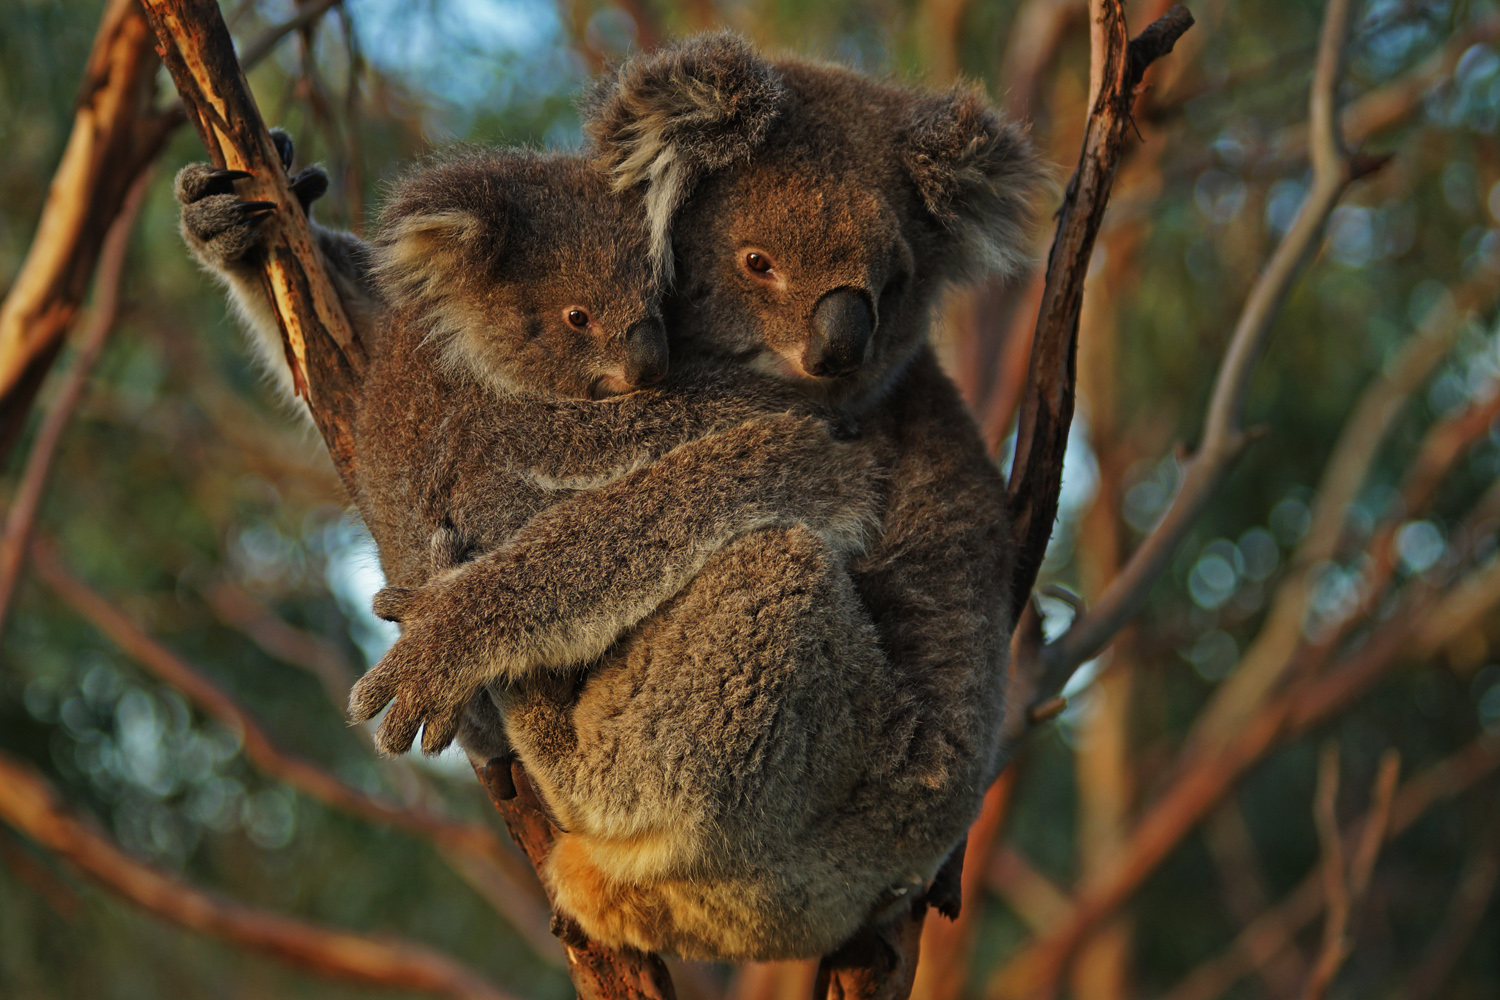 KOALAS - View Koalas in their natural environment resting and feeding in majestic old manna gums in a private setting.